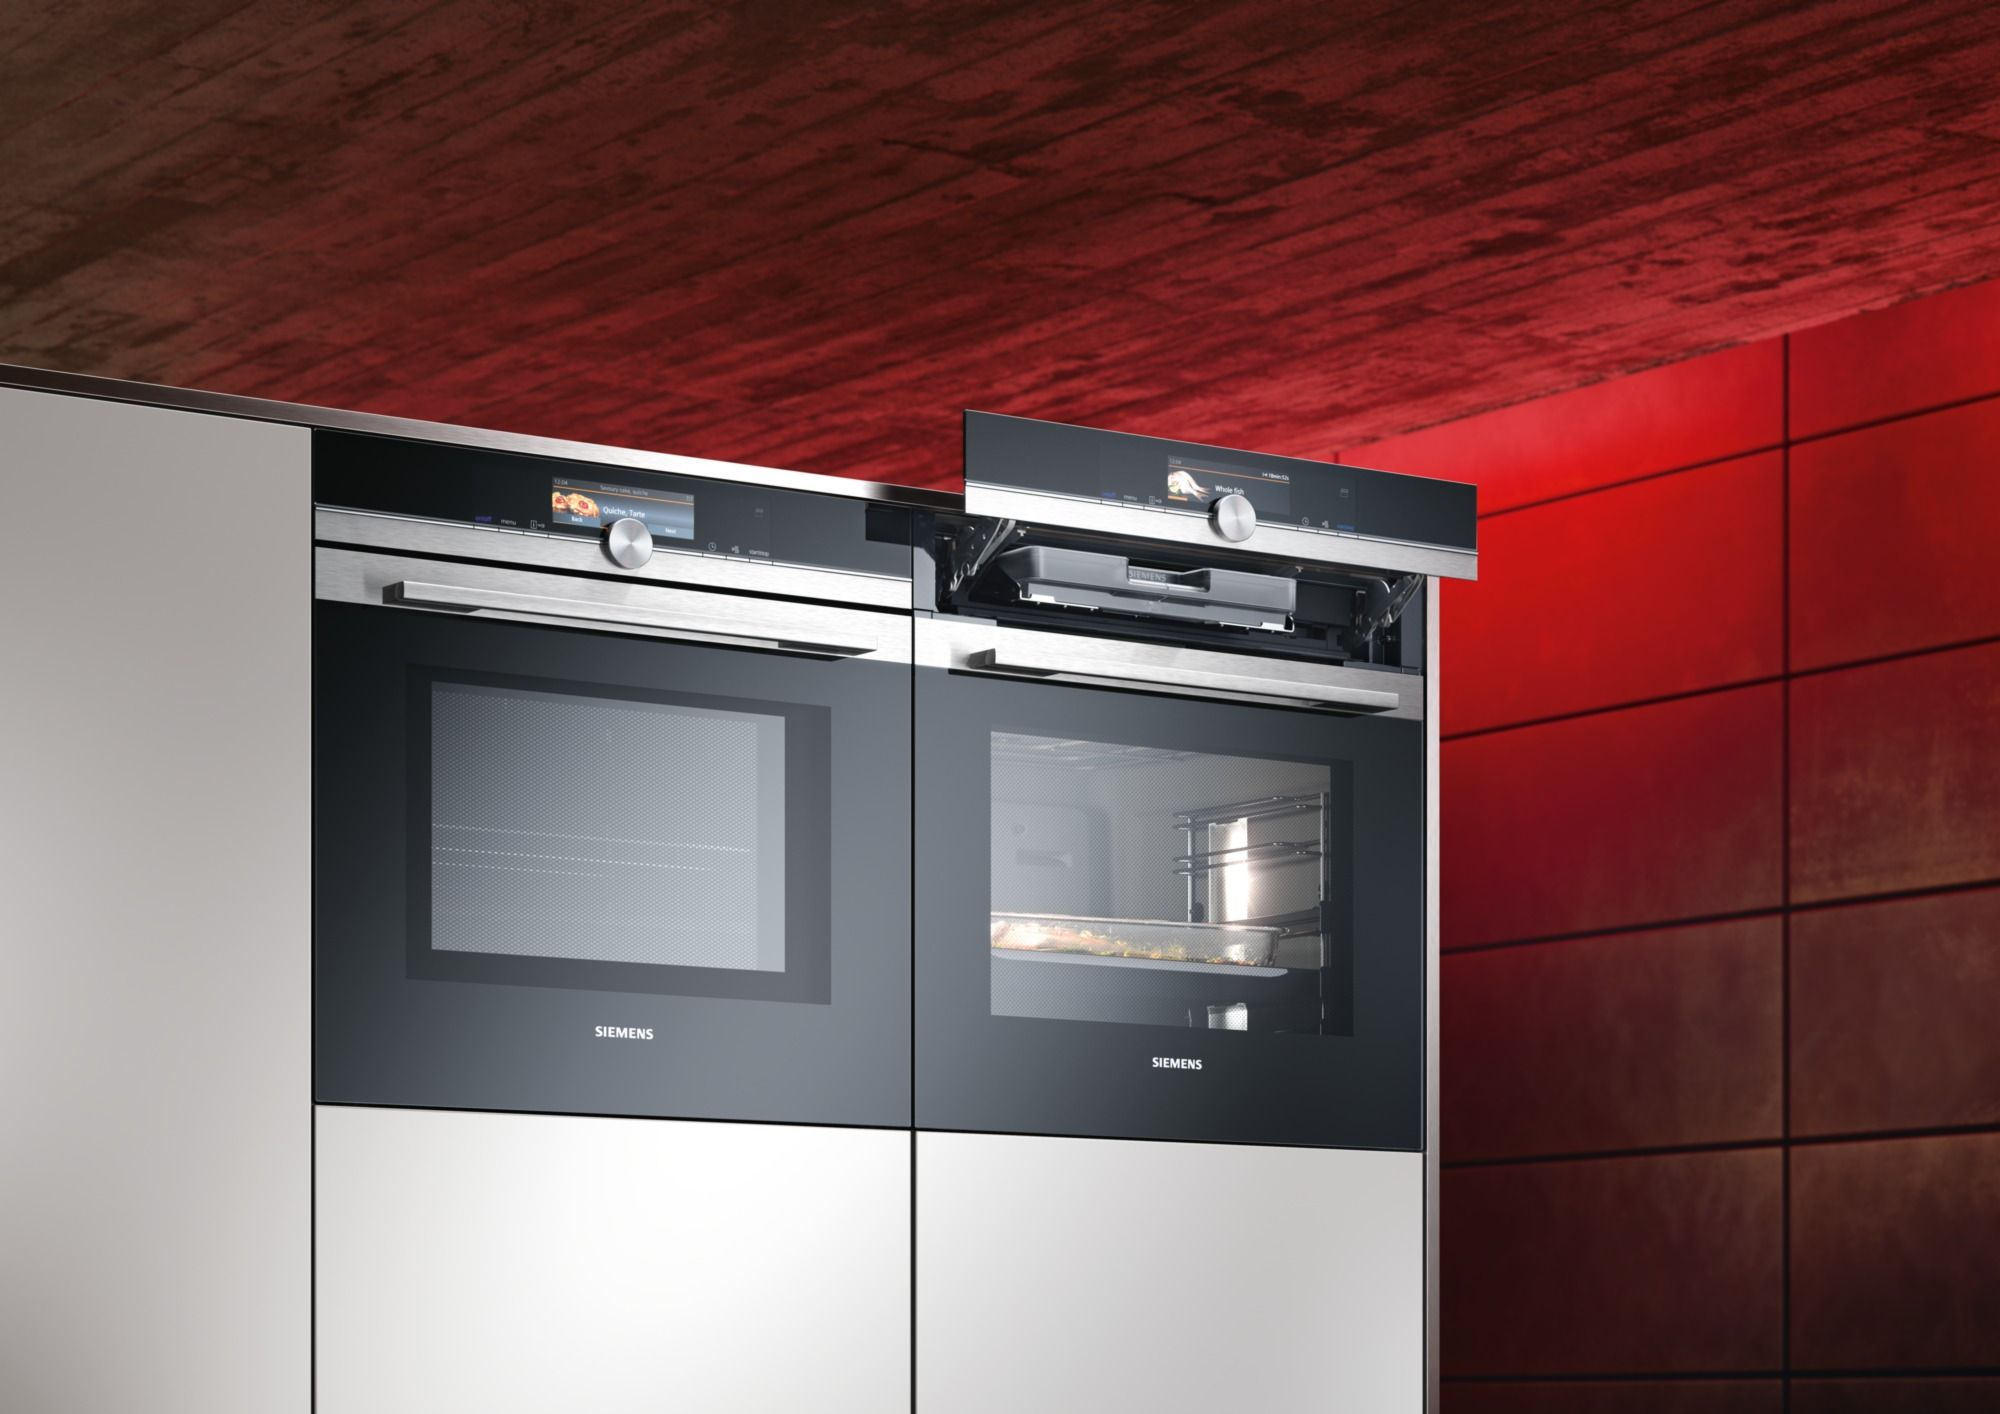 New Siemens Range Iq700 Steam With Siemens Combi Steam Ovens And